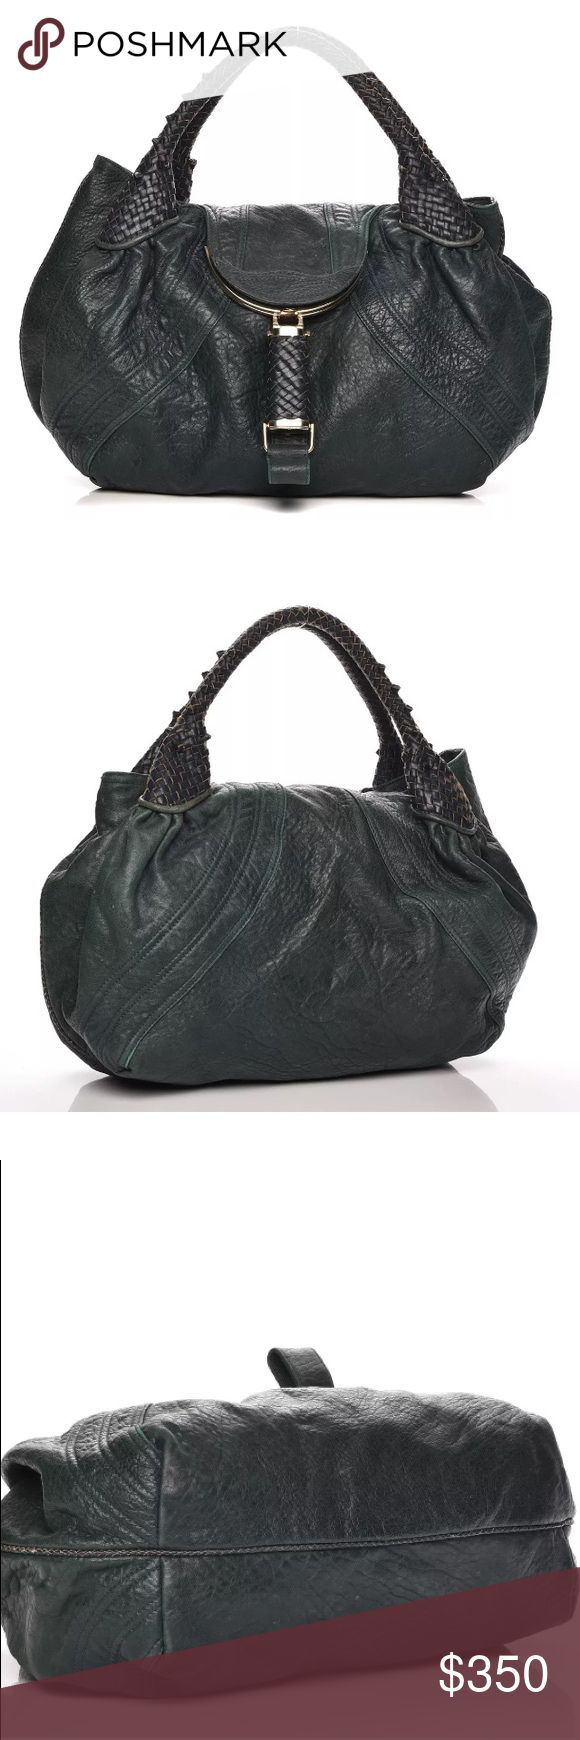 Authentic Fendi Spy Bag - Green Nappa Leather Pre owned and in good condition bag. Missing the bottom hardware seen in last photo. No major scuffs or damage exterior or interior. Great price too !! Fendi Bags Hobos